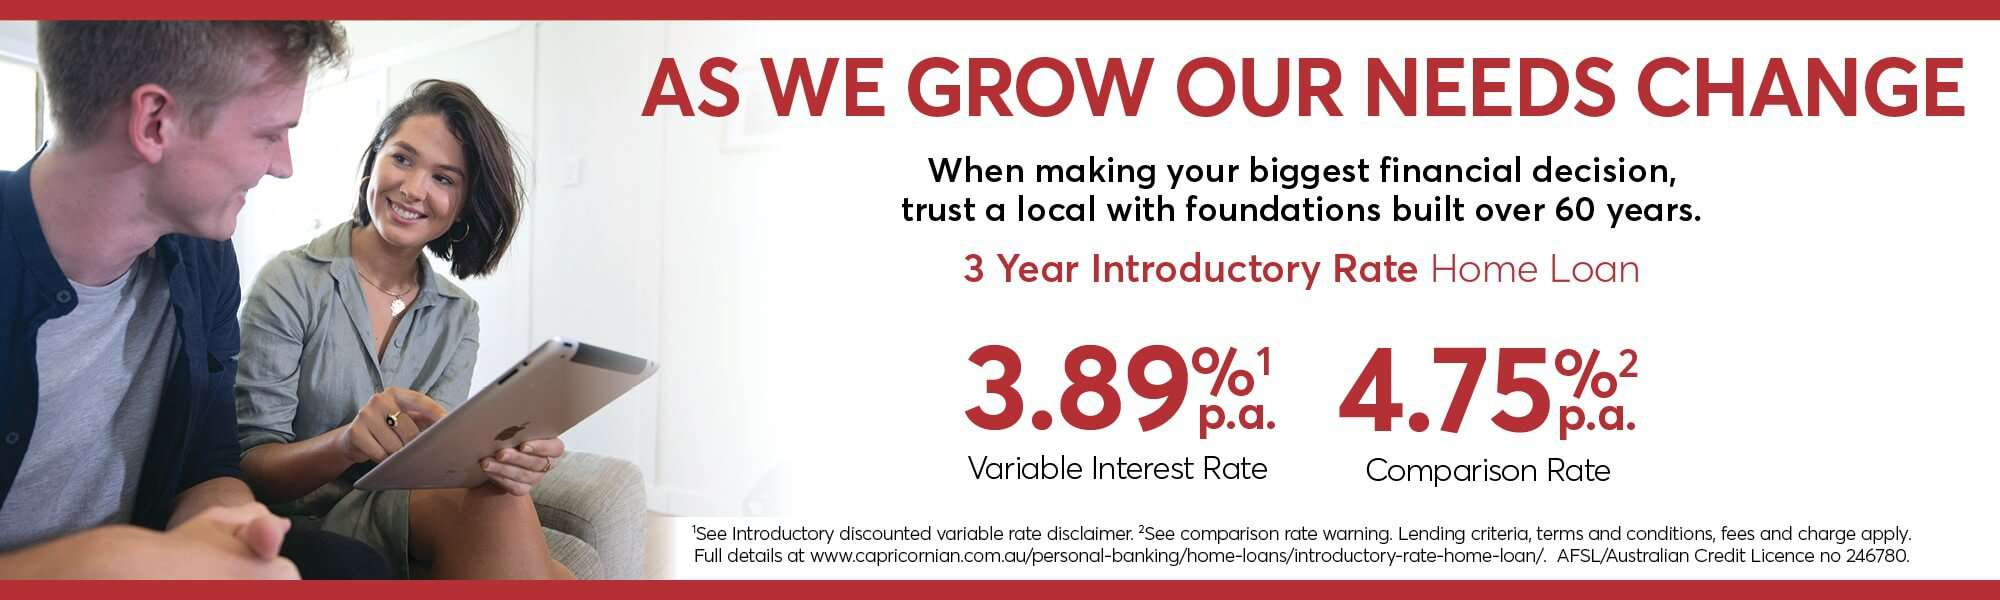 3 Year Introductory Rate Home Loan Couple